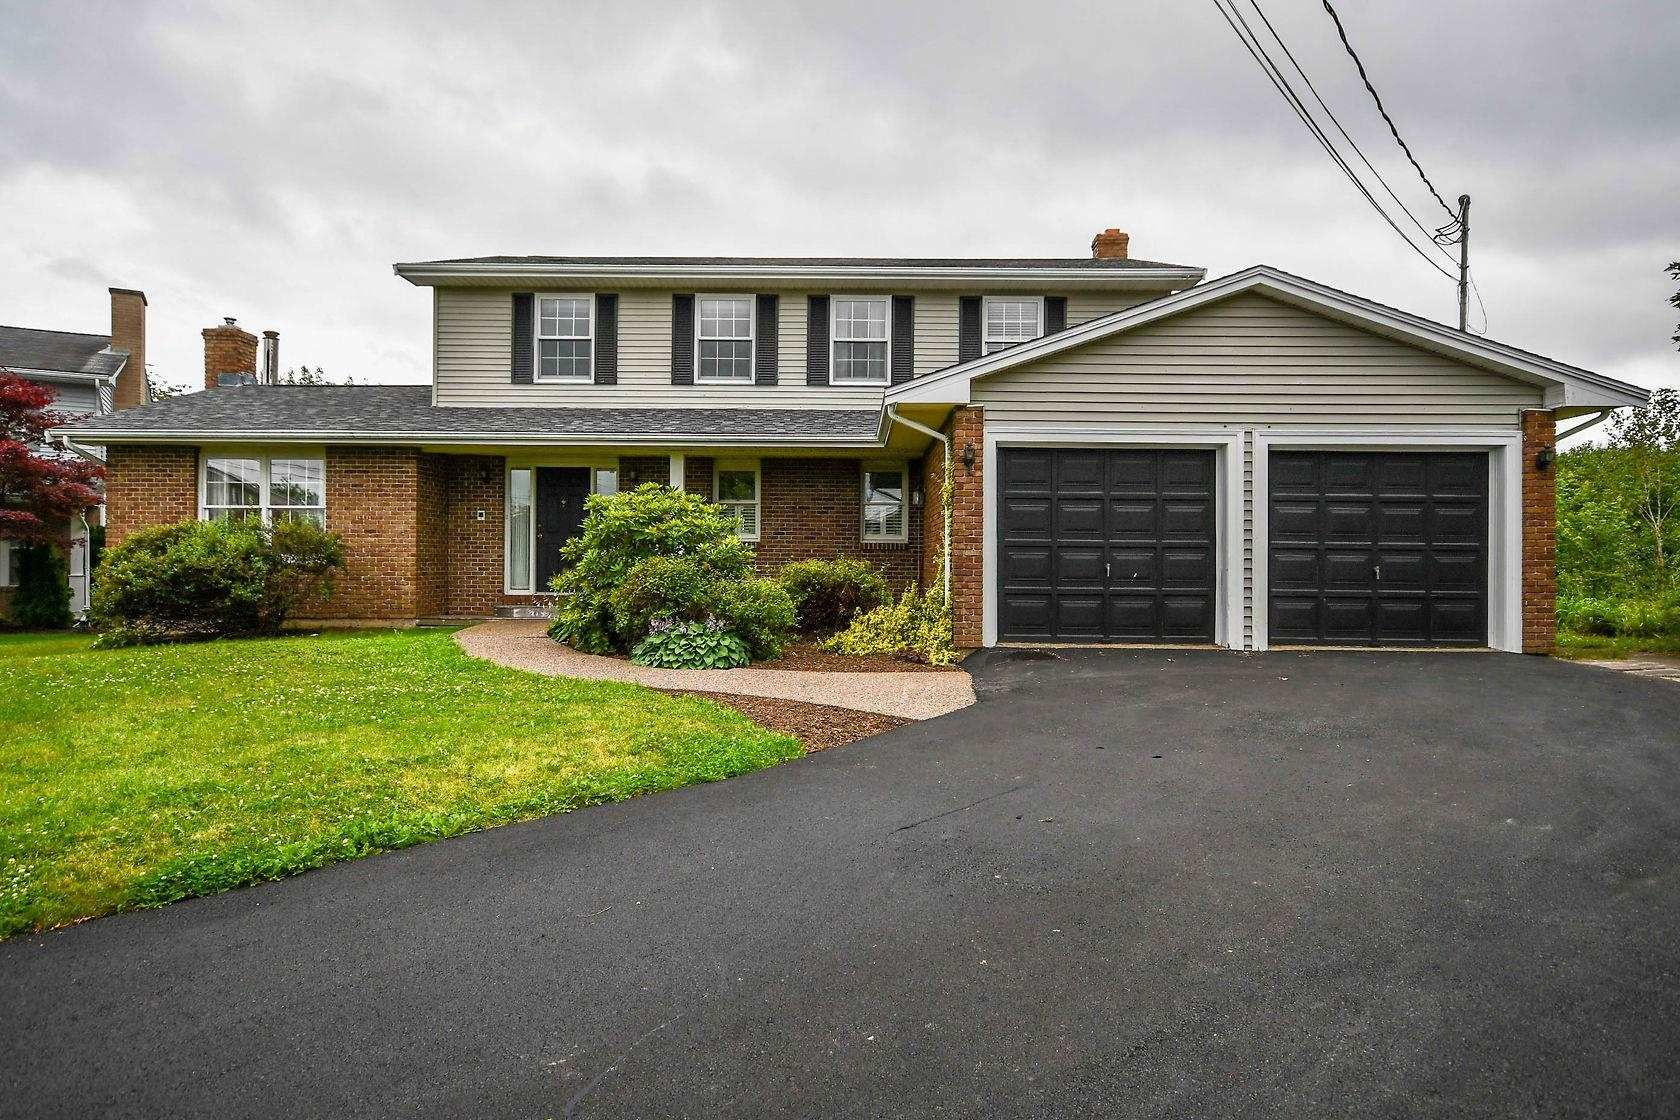 Main Photo: 40 Stoneridge Court in Bedford: 20-Bedford Residential for sale (Halifax-Dartmouth)  : MLS®# 202118918